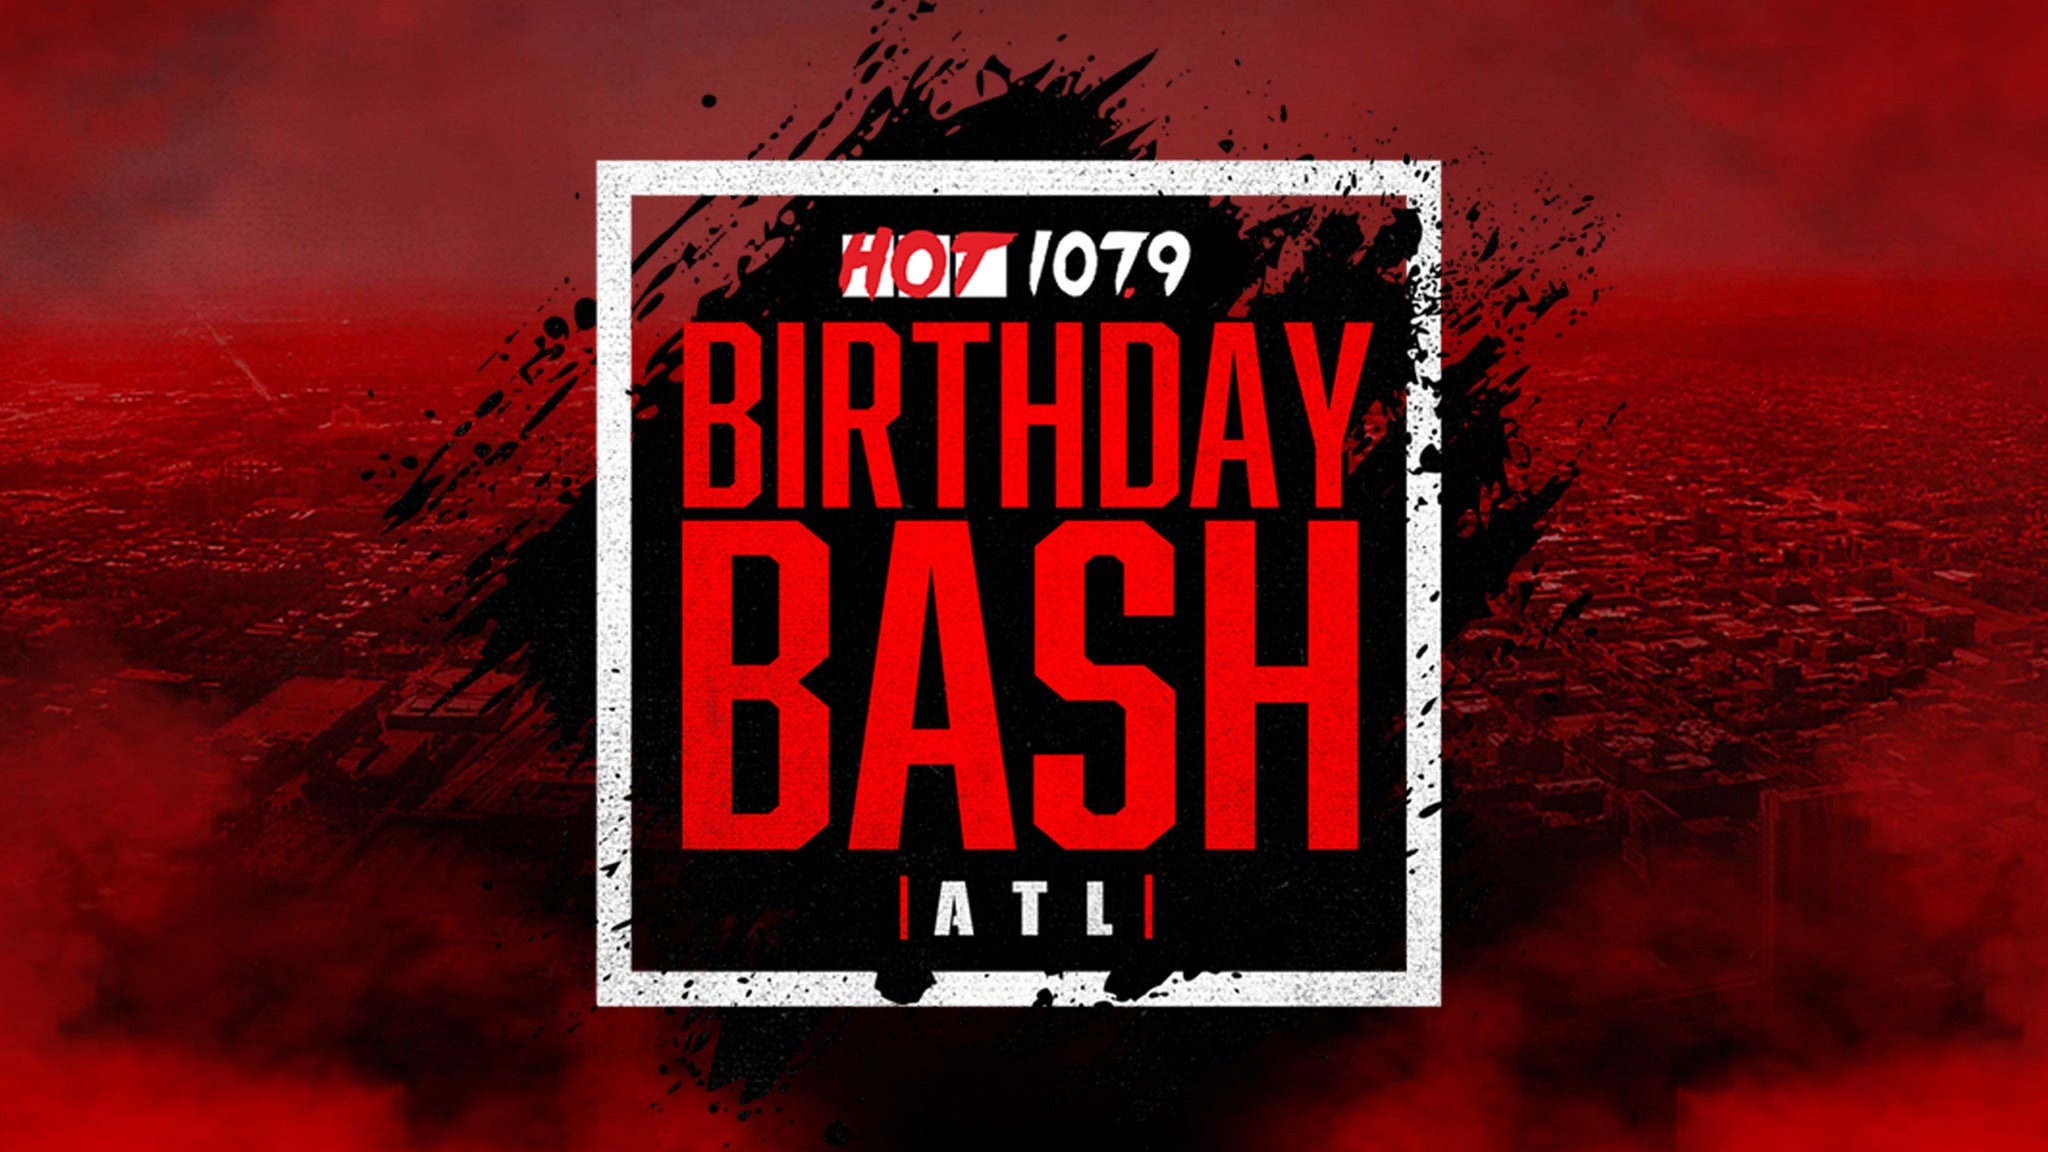 Hot 107.9 Birthday Bash 25 at State Farm Arena